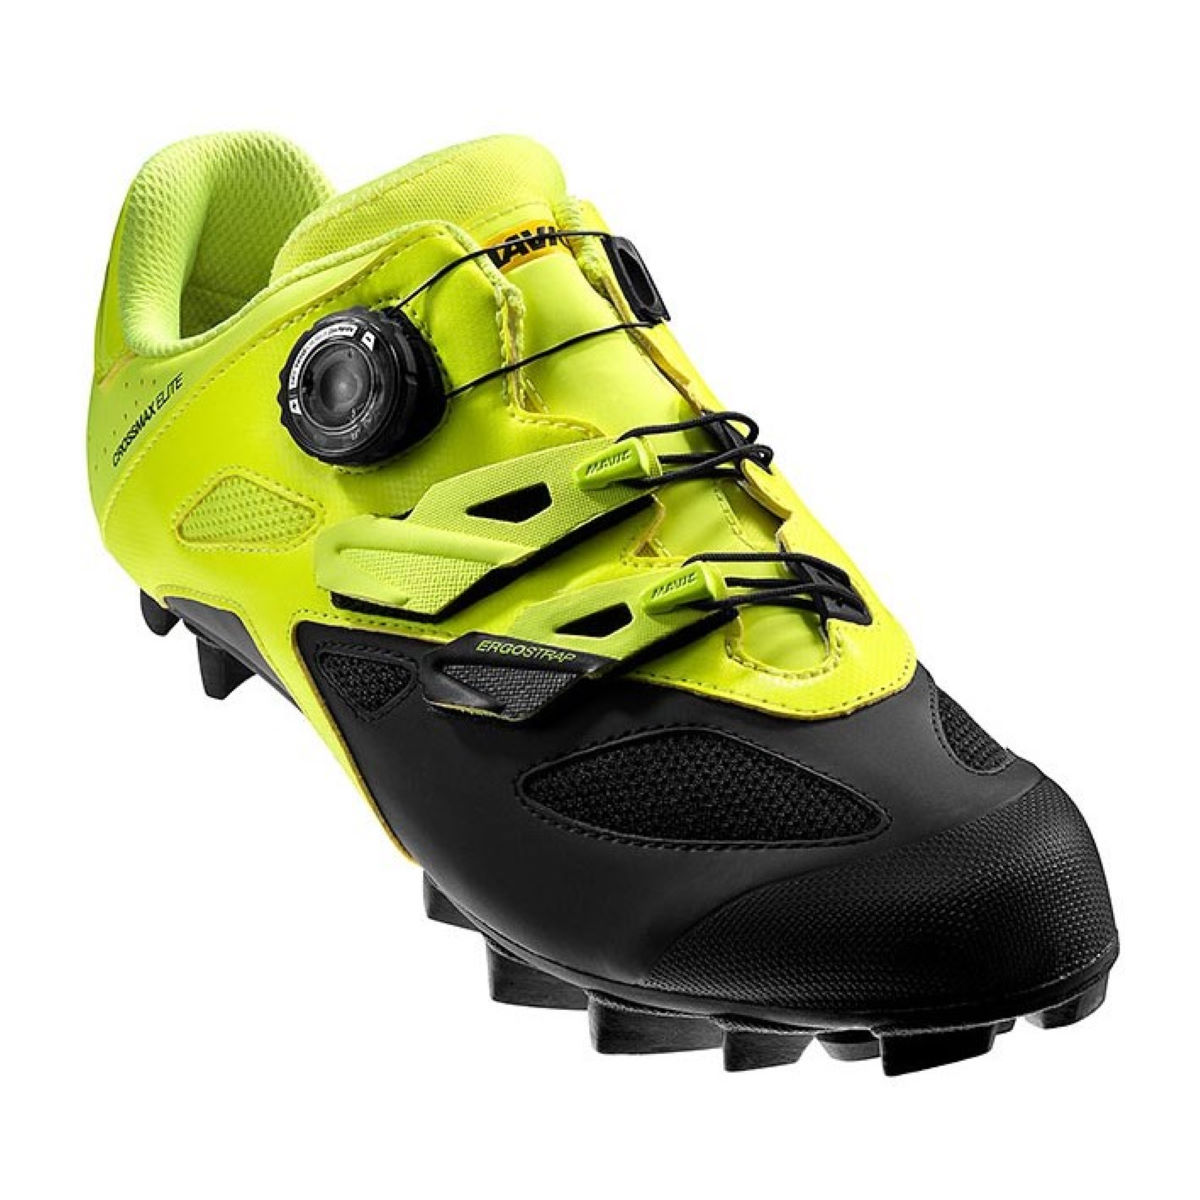 Chaussures VTT Mavic Crossmax Elite - 7 Sfty Yell/Black/Blac